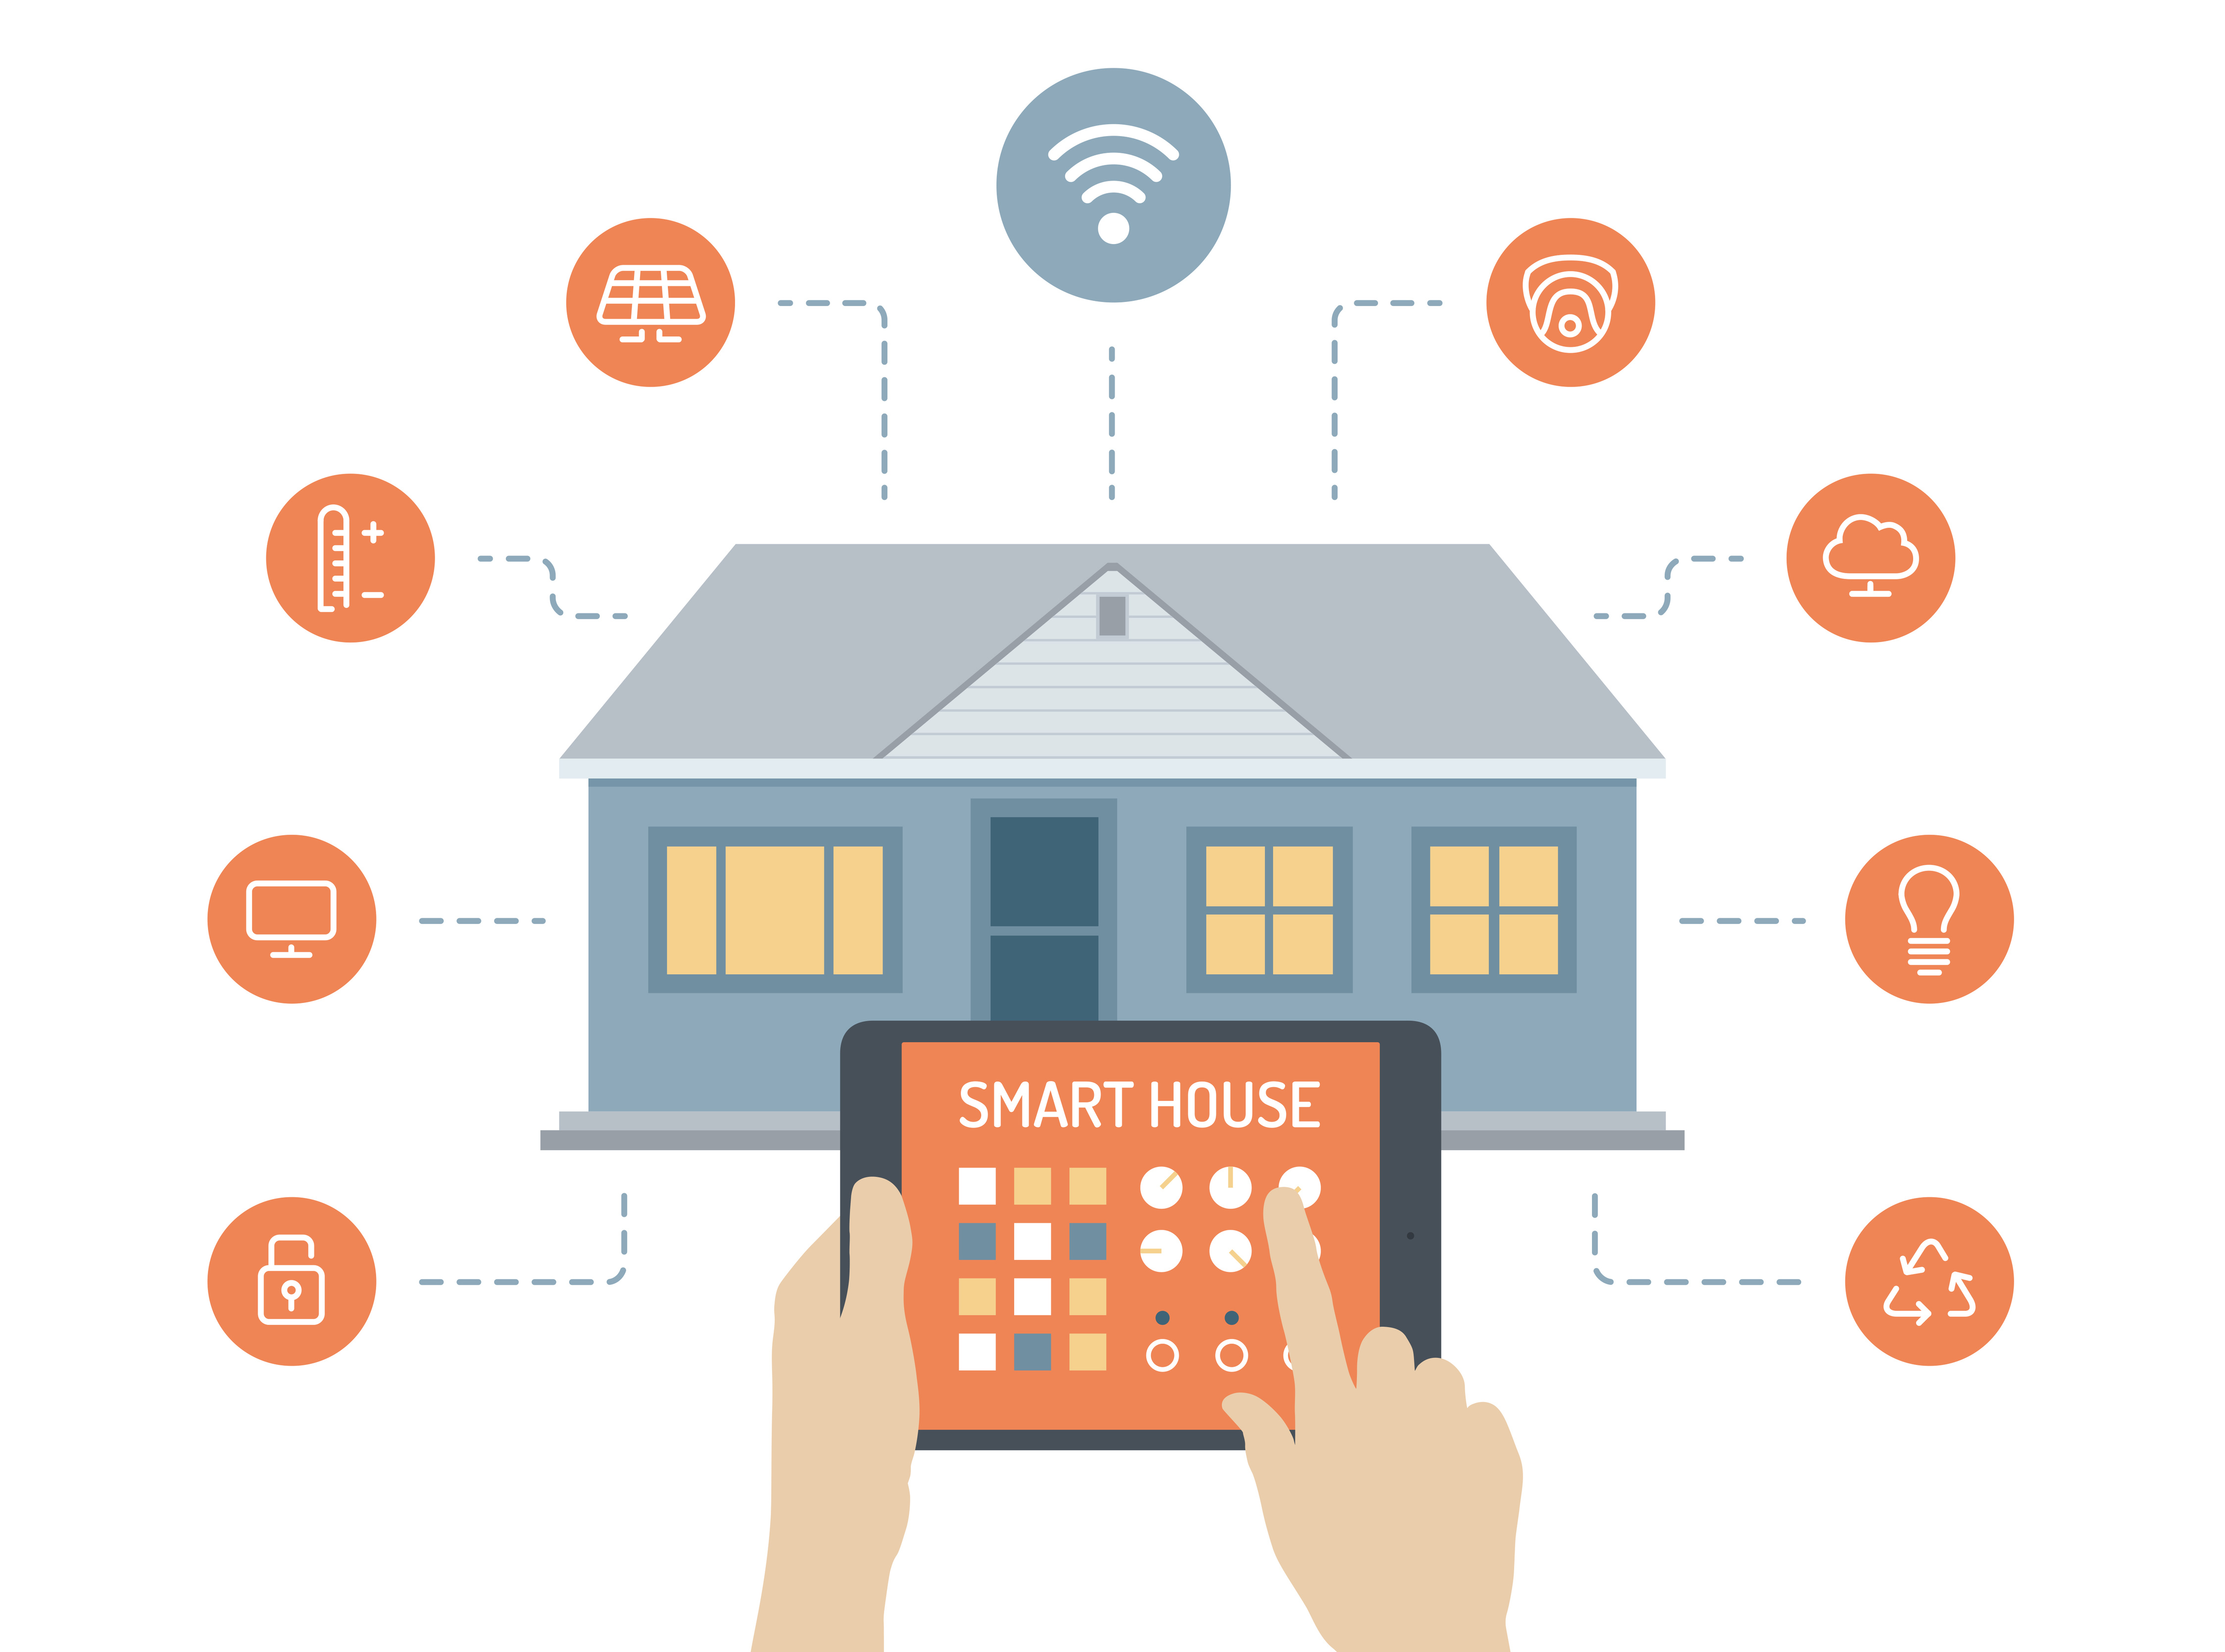 Flat design style modern vector illustration concept of smart house technology system with centralized control of lighting, heating, ventilation and air conditioning, security locks and video surveillance, energy savings and efficiency. Isolated on white background.